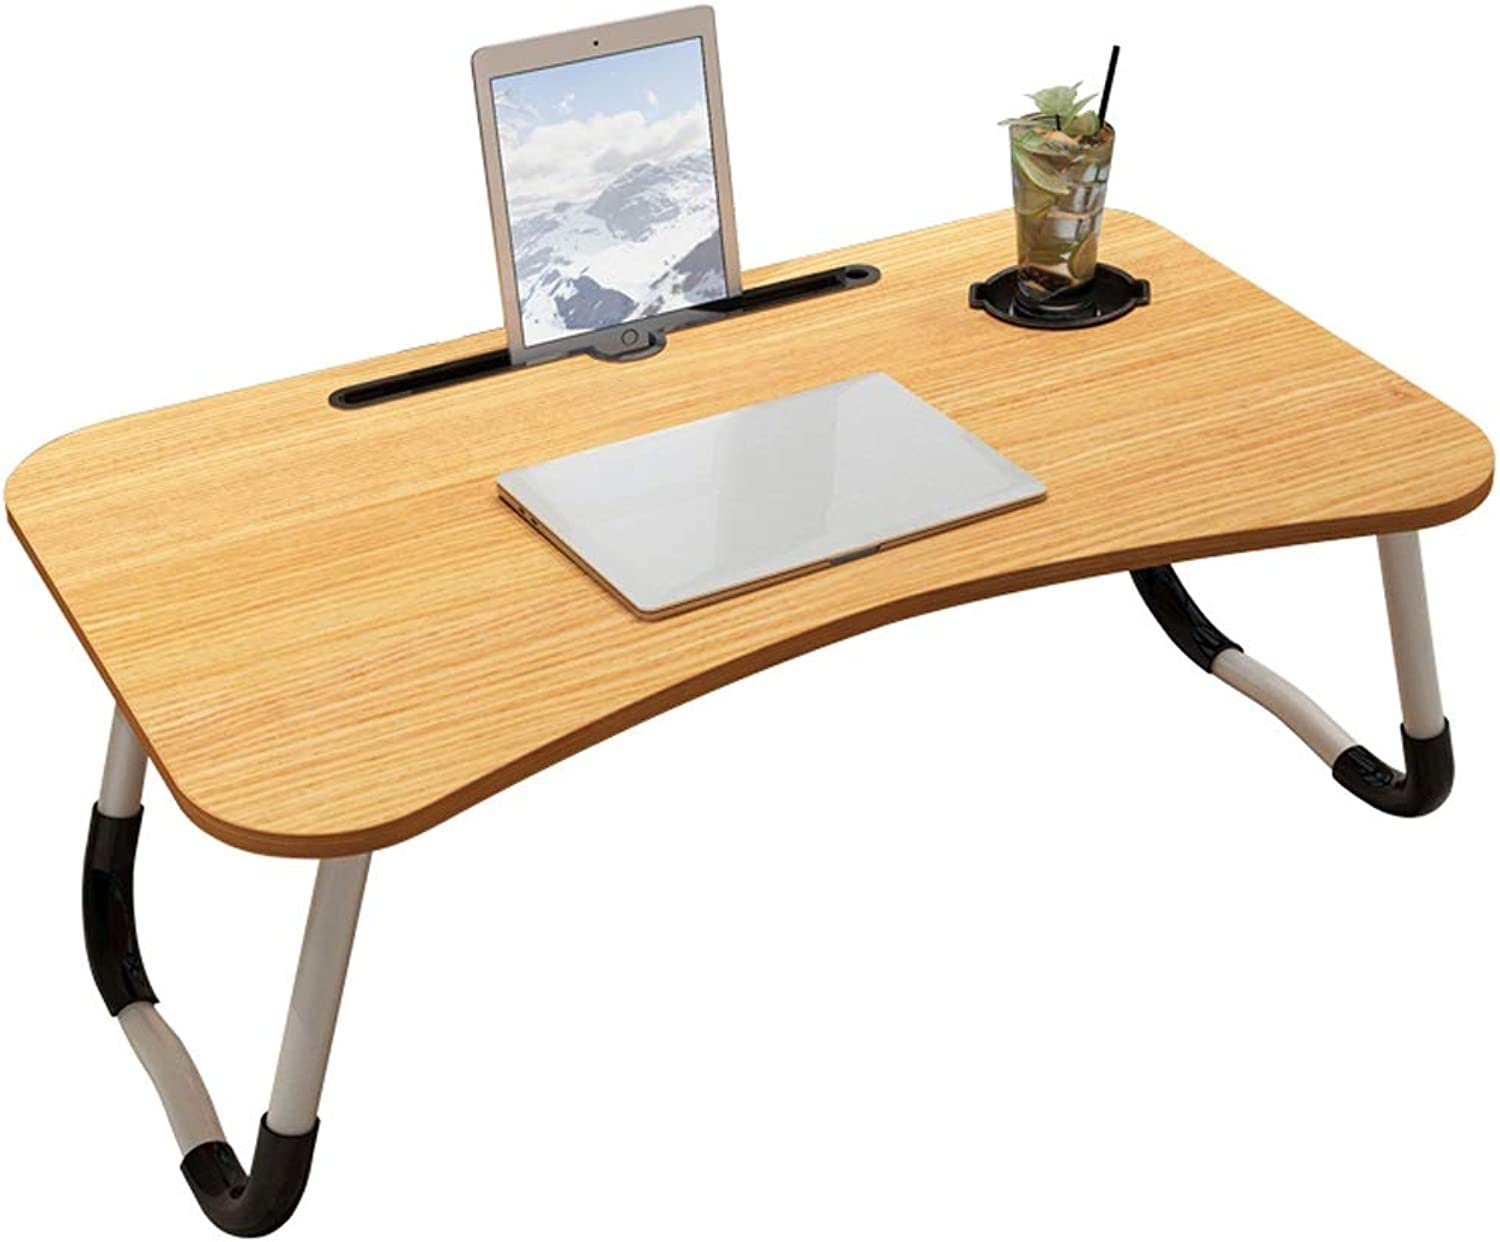 Simple Computer Desk Bed Desk Folding Dormitory Home Multi-Function Living Room Portable Desk Lazy Table Student Table (60x40x28CM)